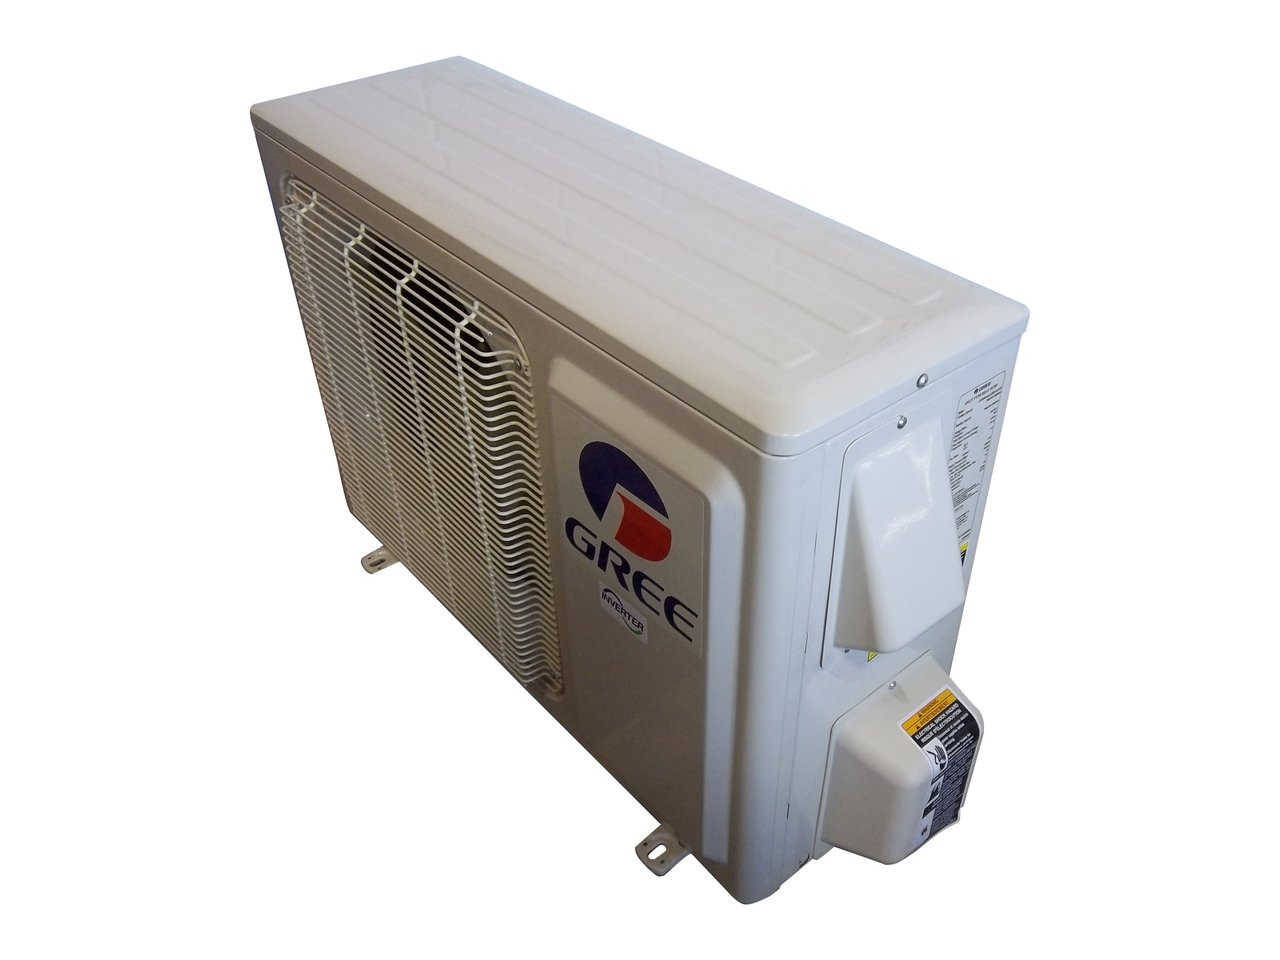 GREE ''Scratch & Dent'' Central Air Conditioner Mini Split GWH09AB-D3DNA2D/0 ACC-9769